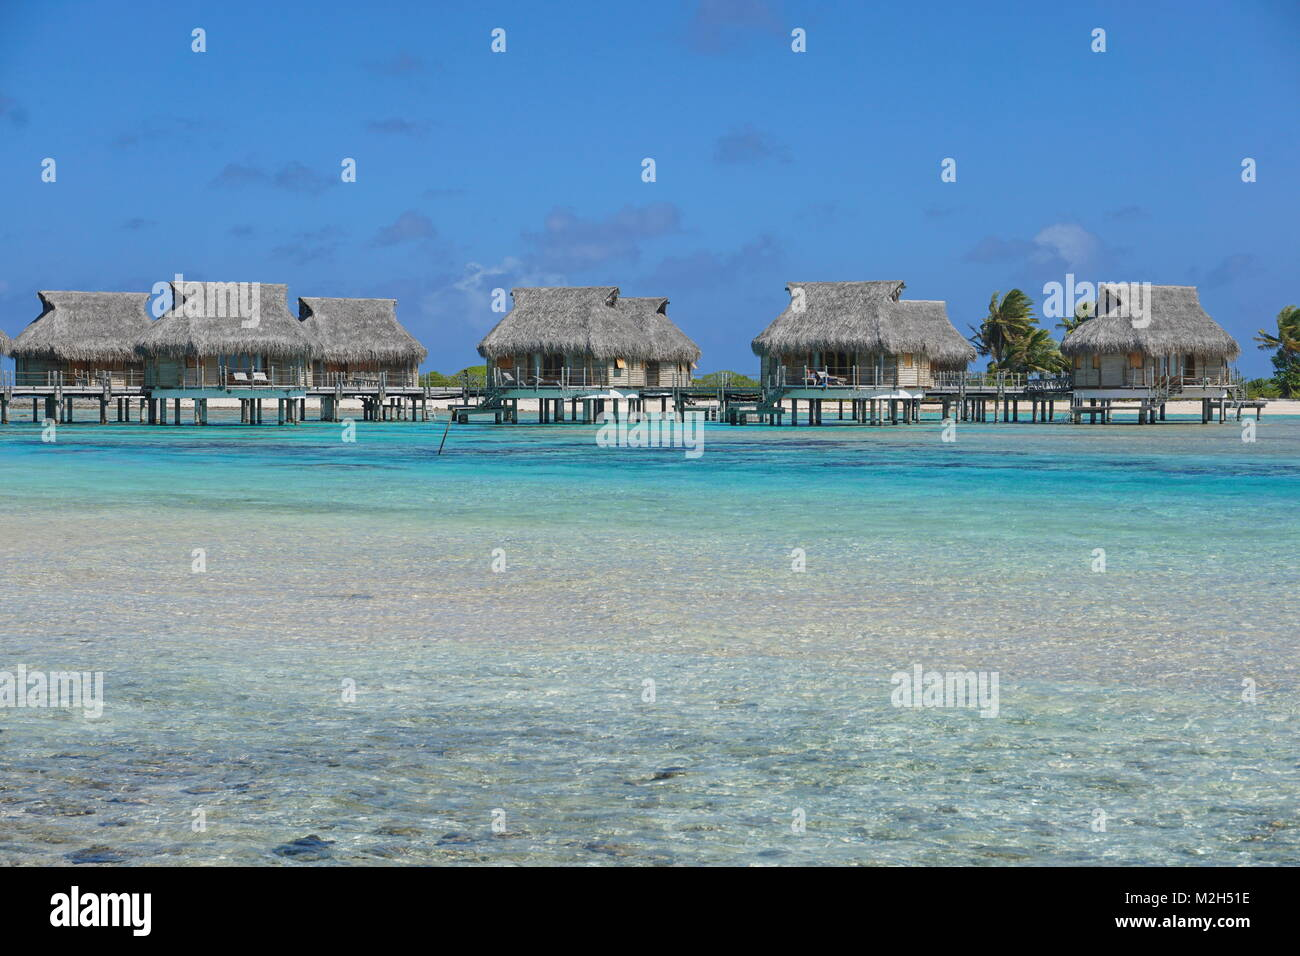 Tropical resort with overwater bungalows in the lagoon, Tikehau atoll, Tuamotus, French Polynesia, Pacific ocean, - Stock Image